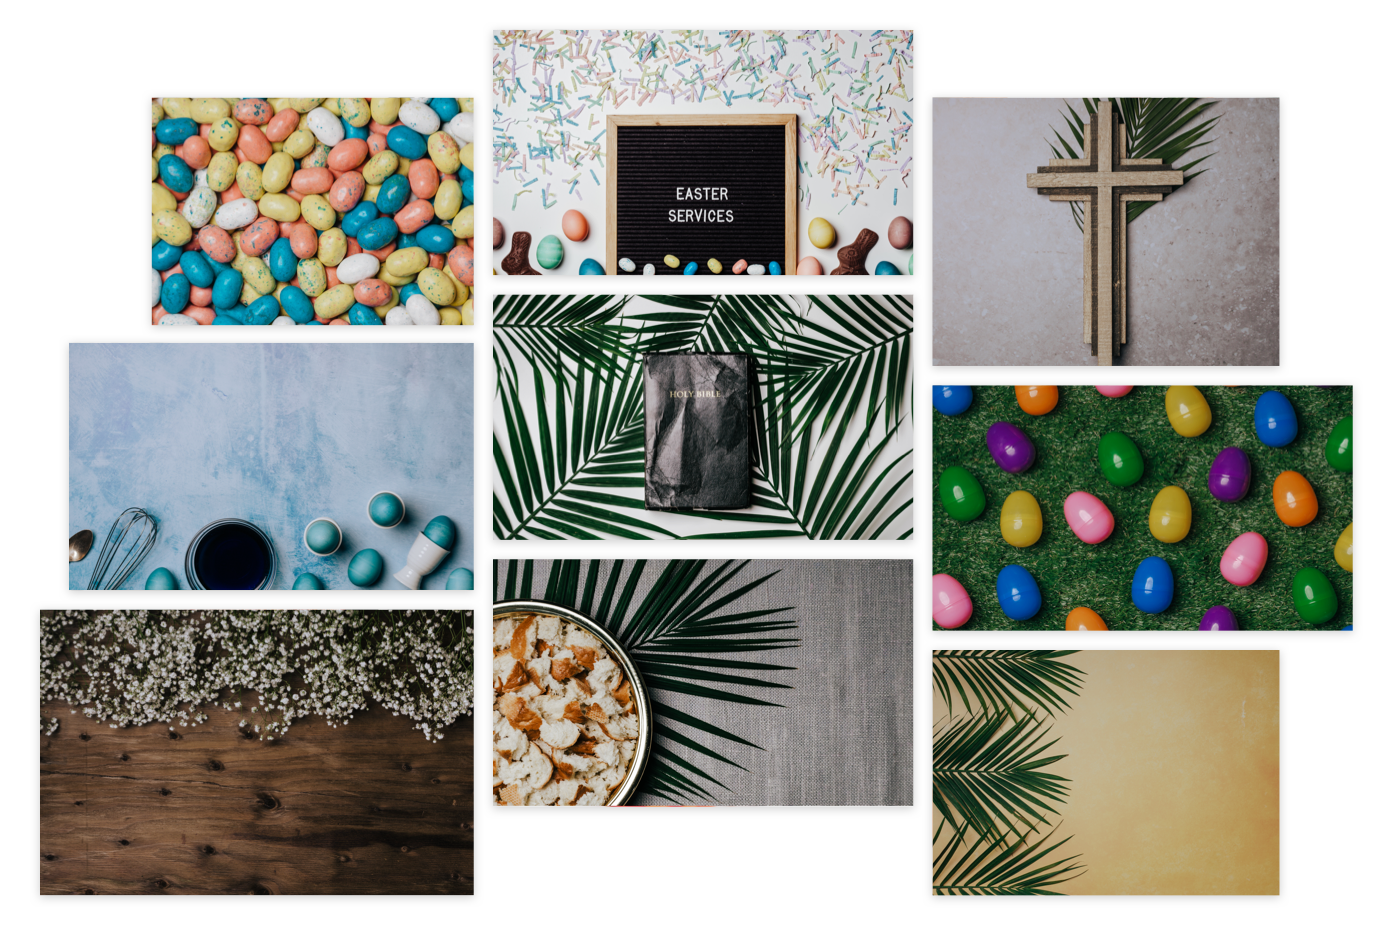 Free Easter stock photos for churches from Faithlife Sites